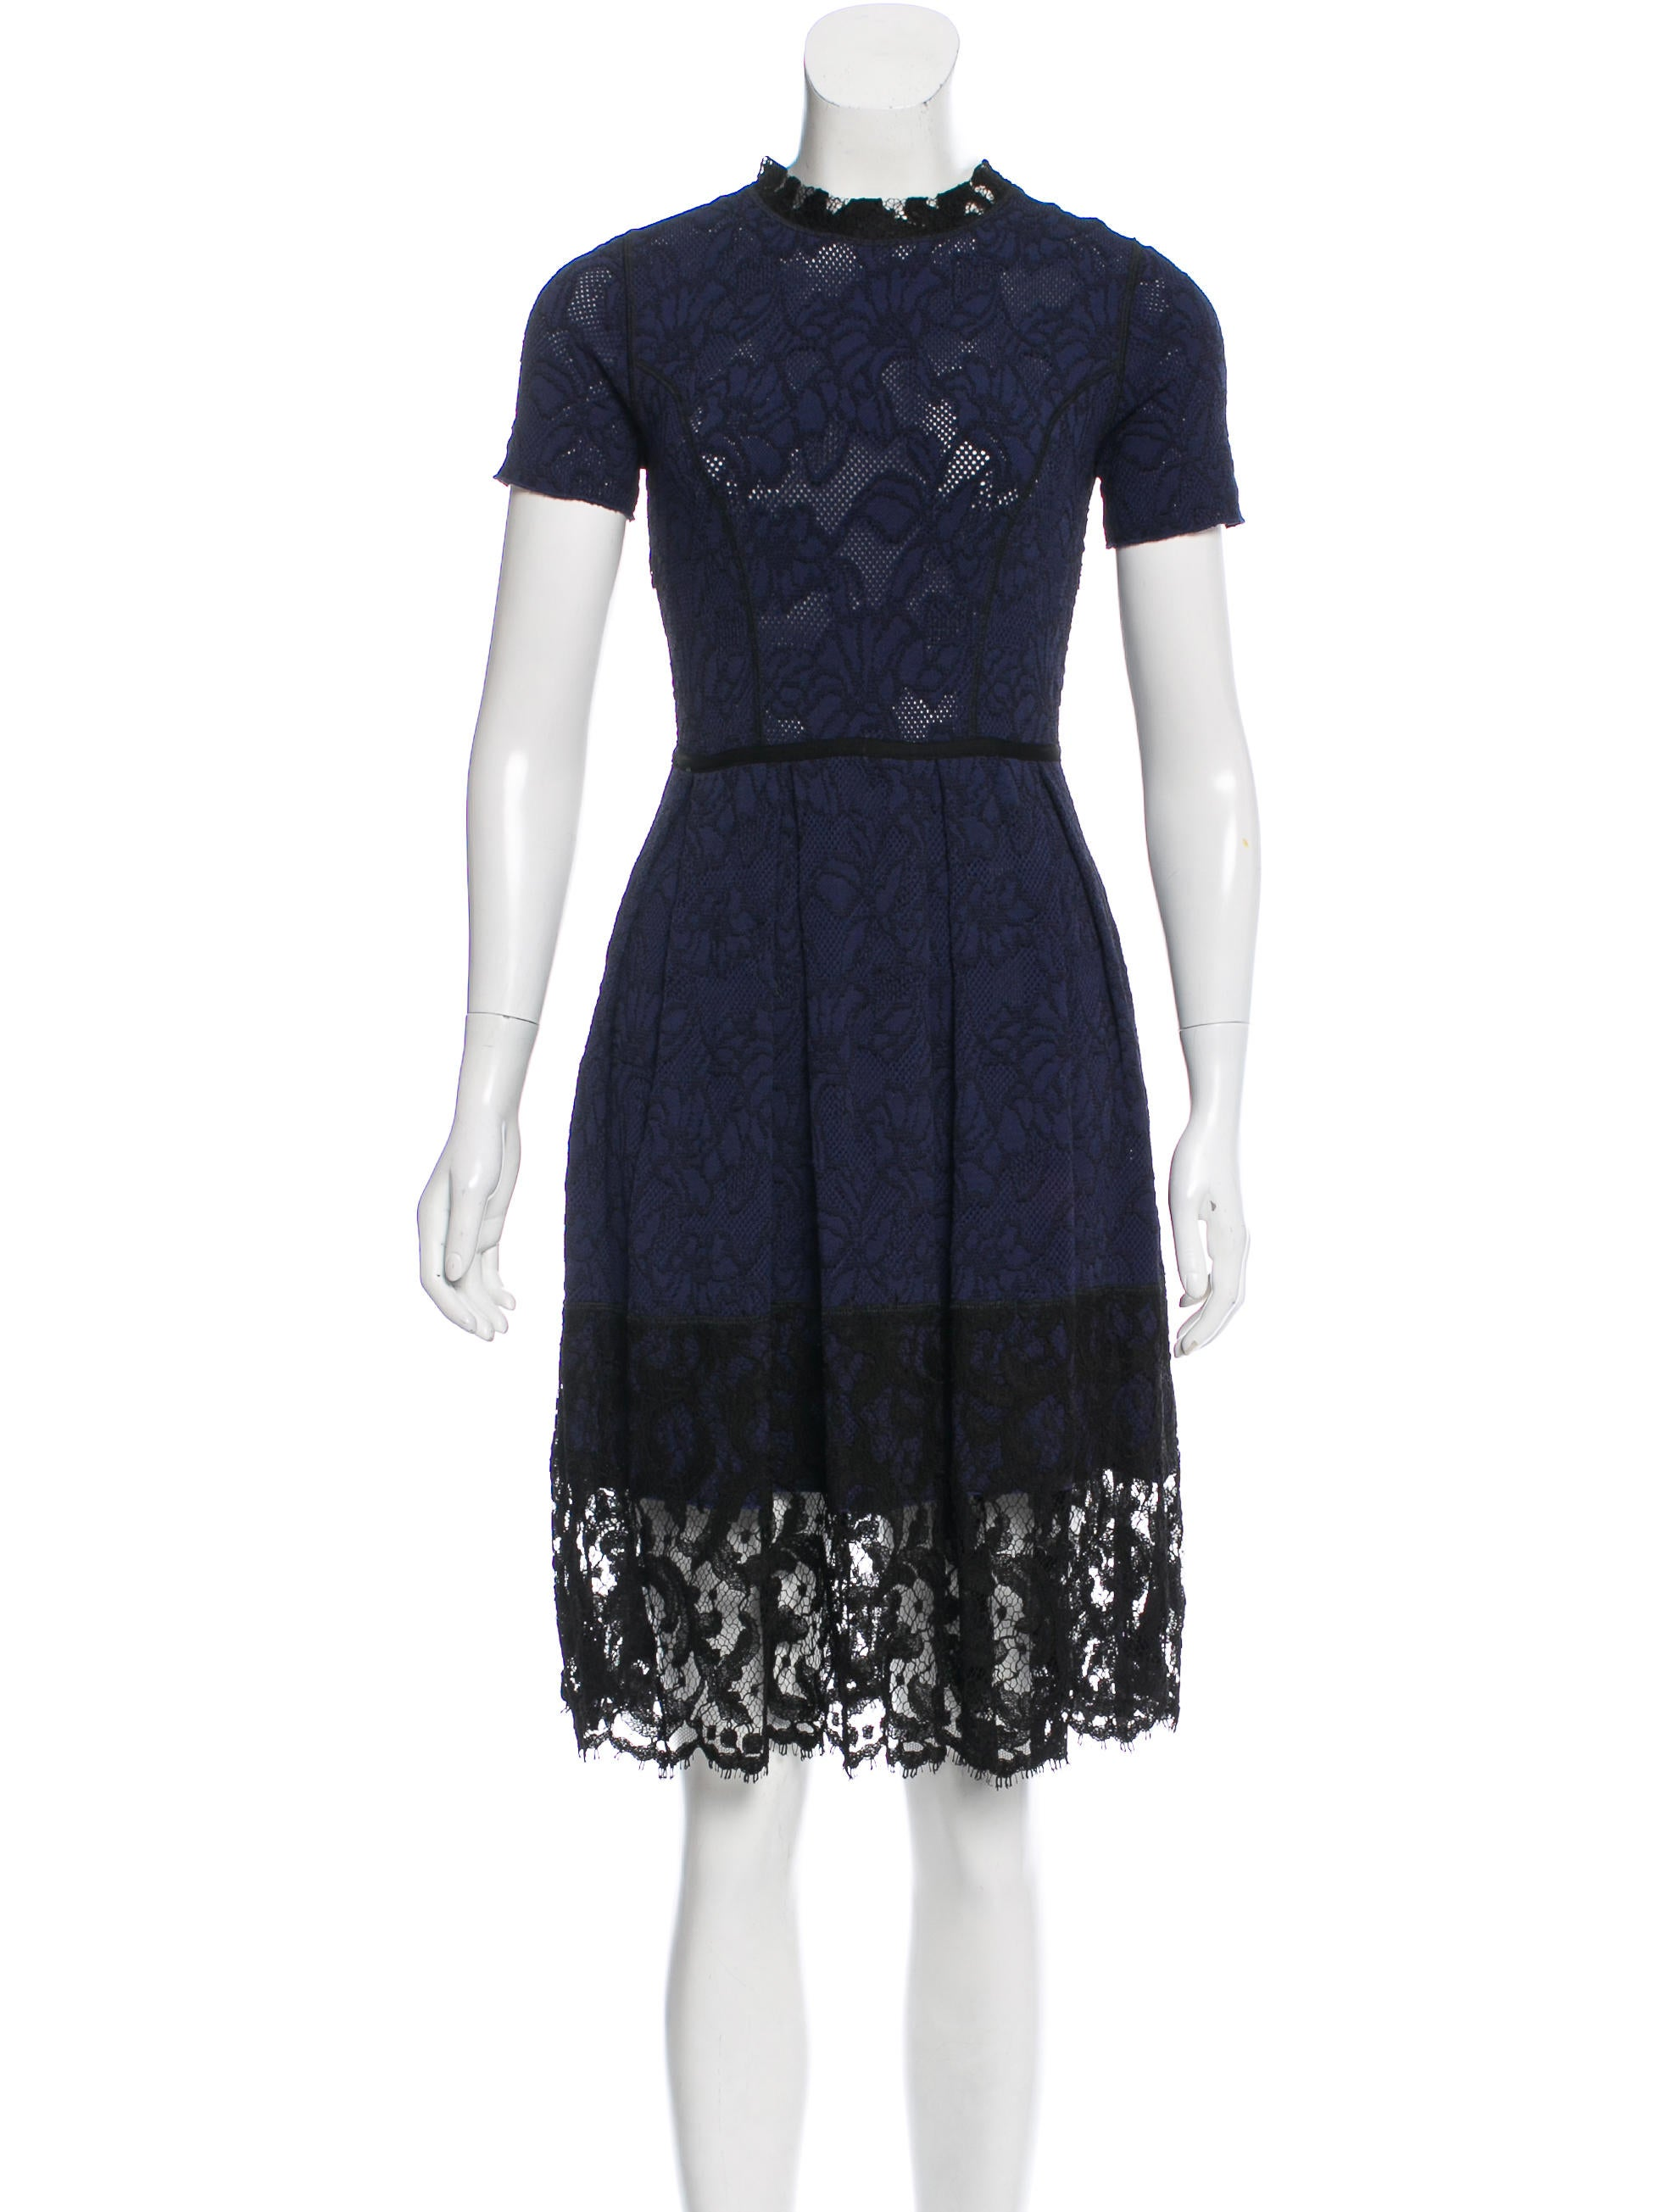 Knitting Wear 2016 : Oscar de la renta knit dress clothing osc